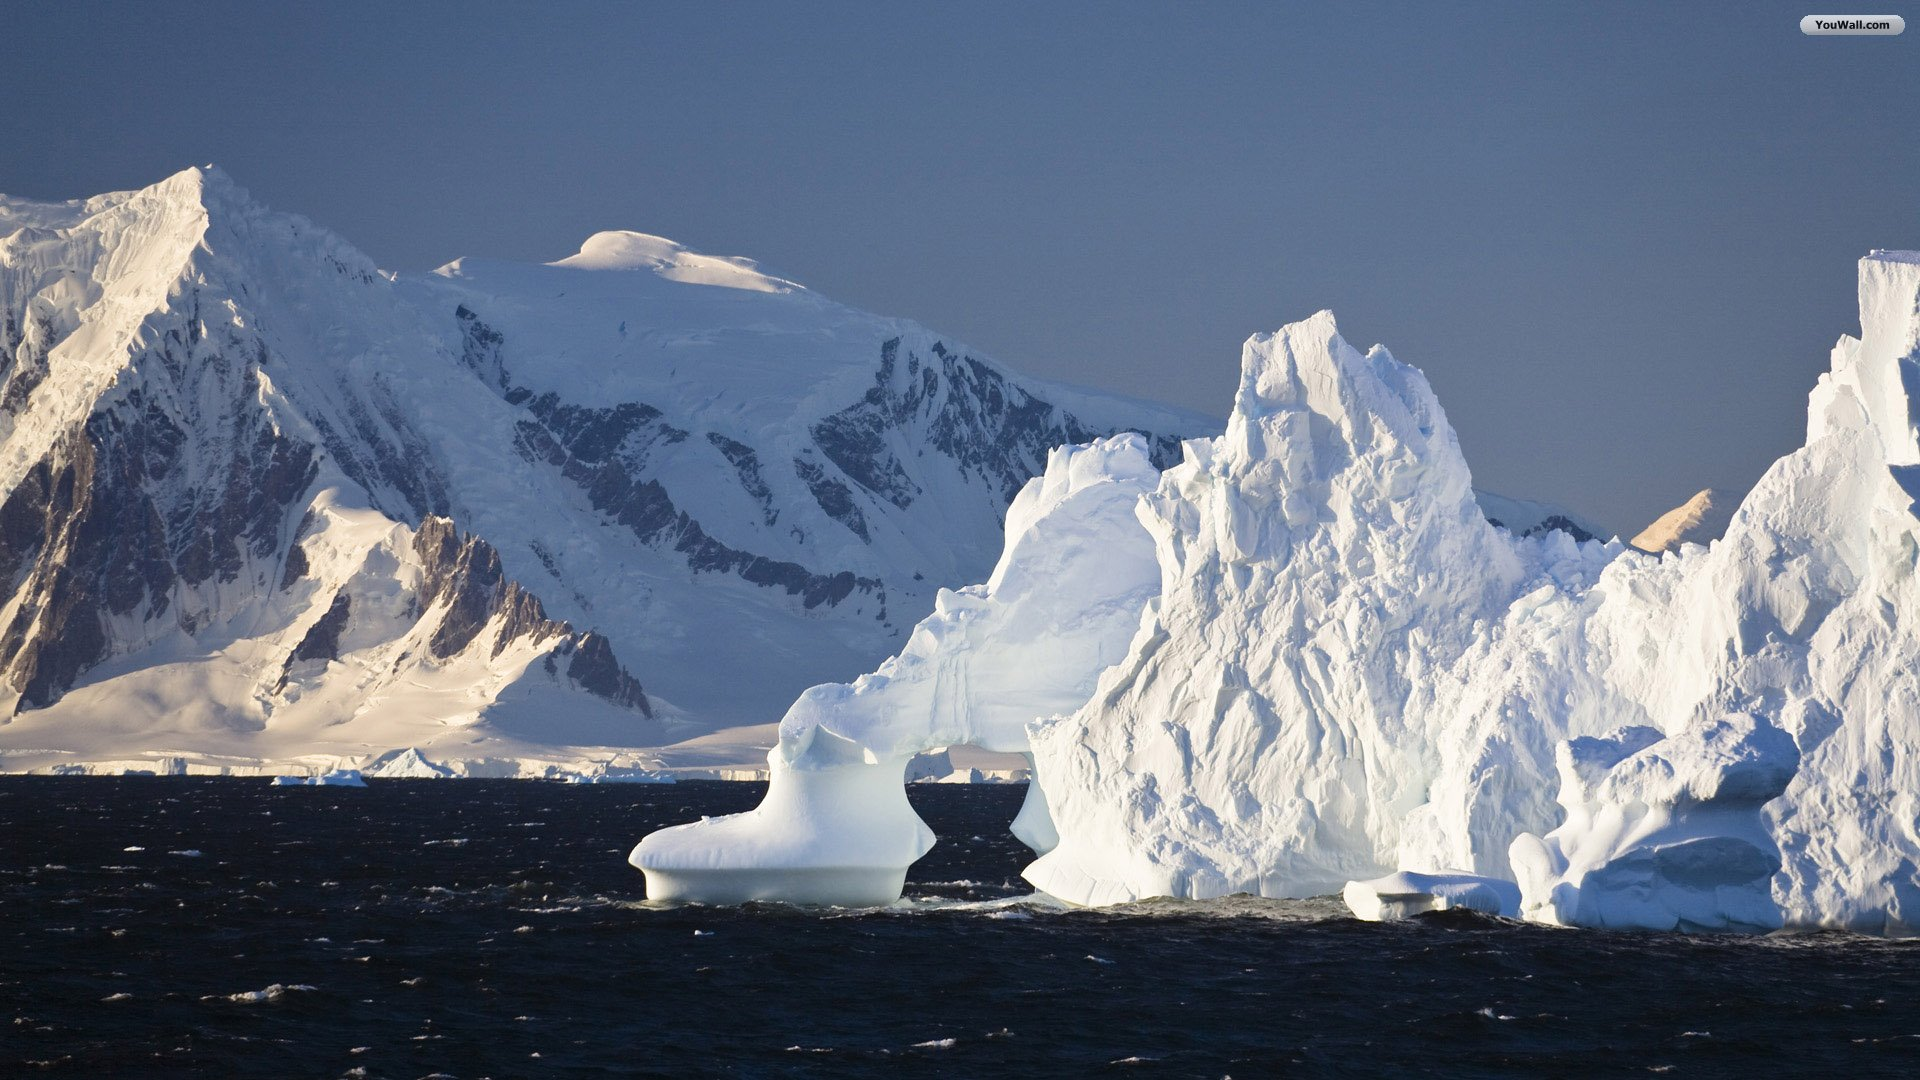 Antarctica hd photos